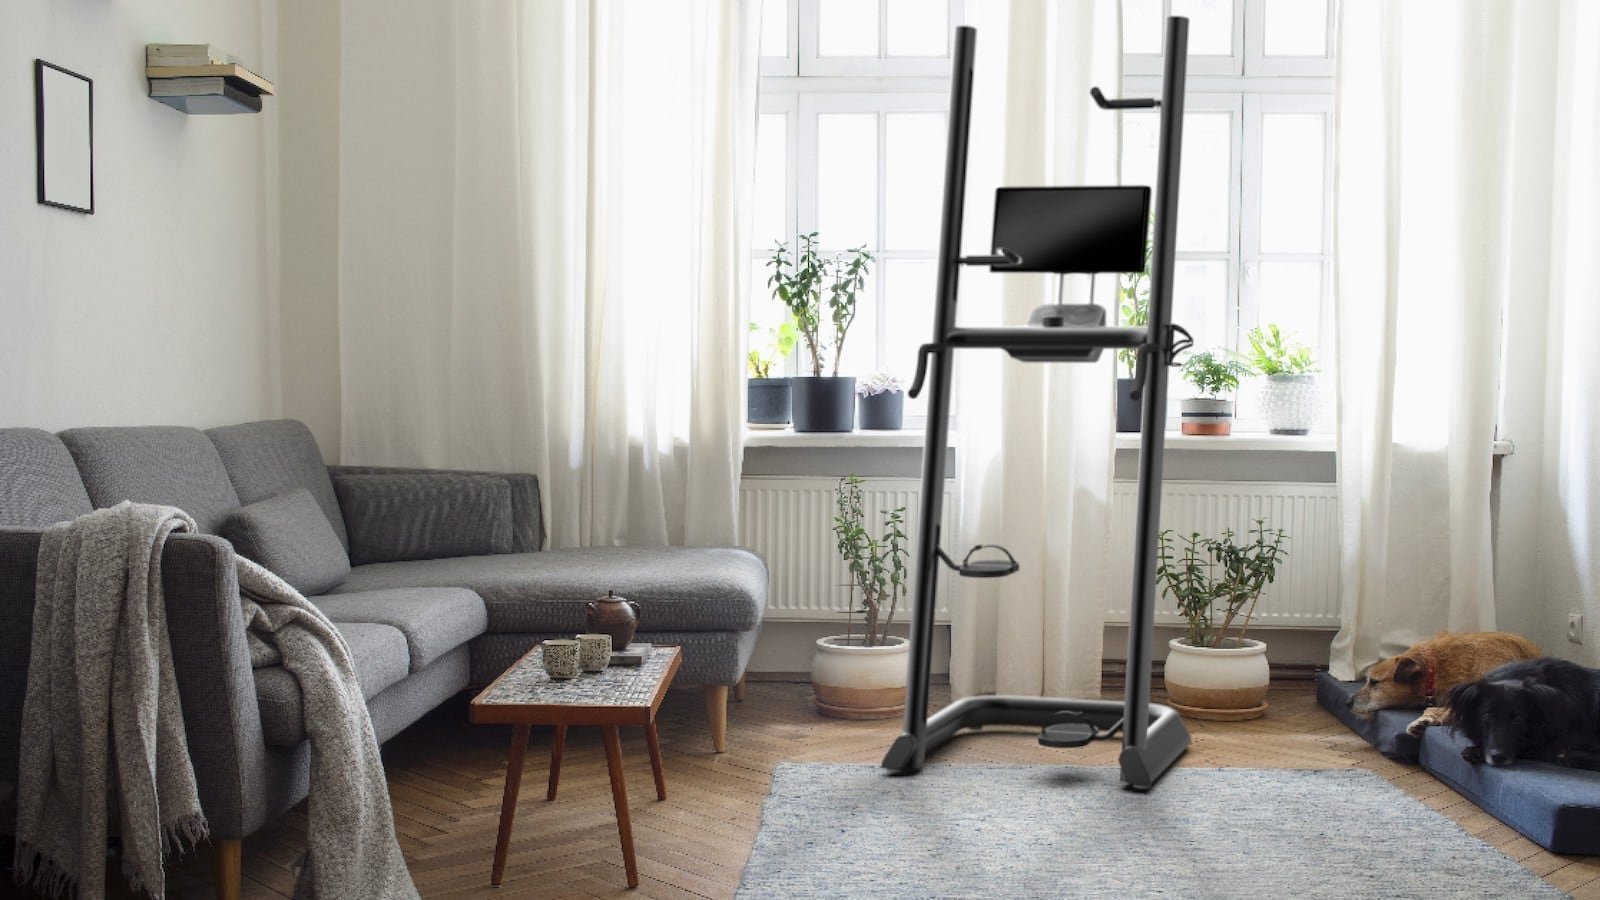 CLMBR Connected climbing machine keeps your body in the correct position